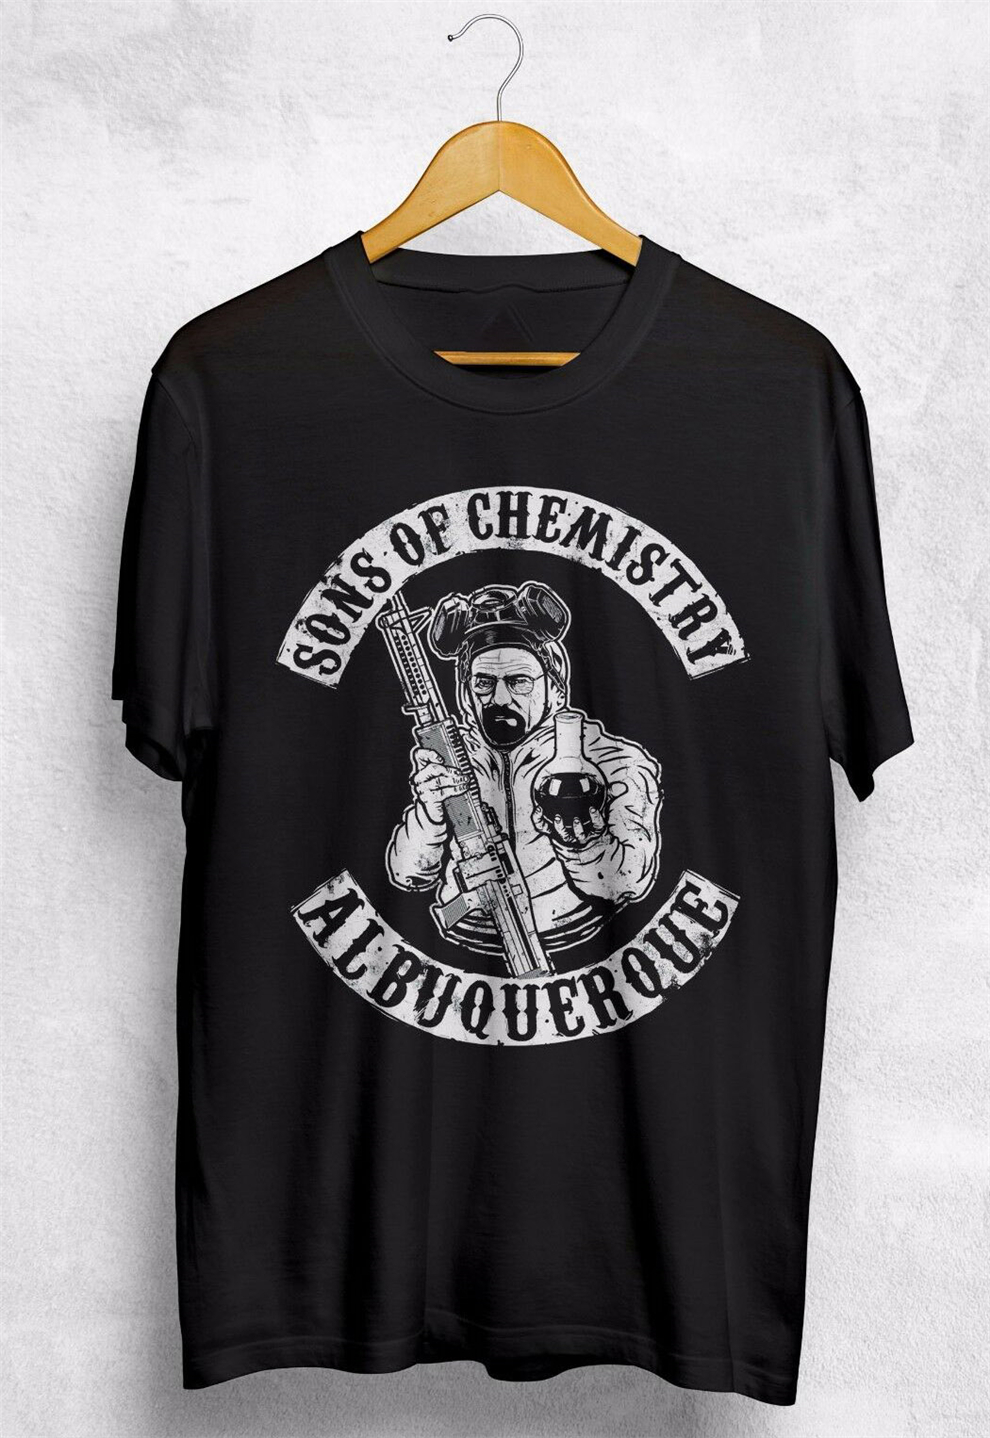 Heisenberg Sons Of Chemistry Anarchy T Shirt Breaking Bad Walter White Science New Trends Tee Shirt image